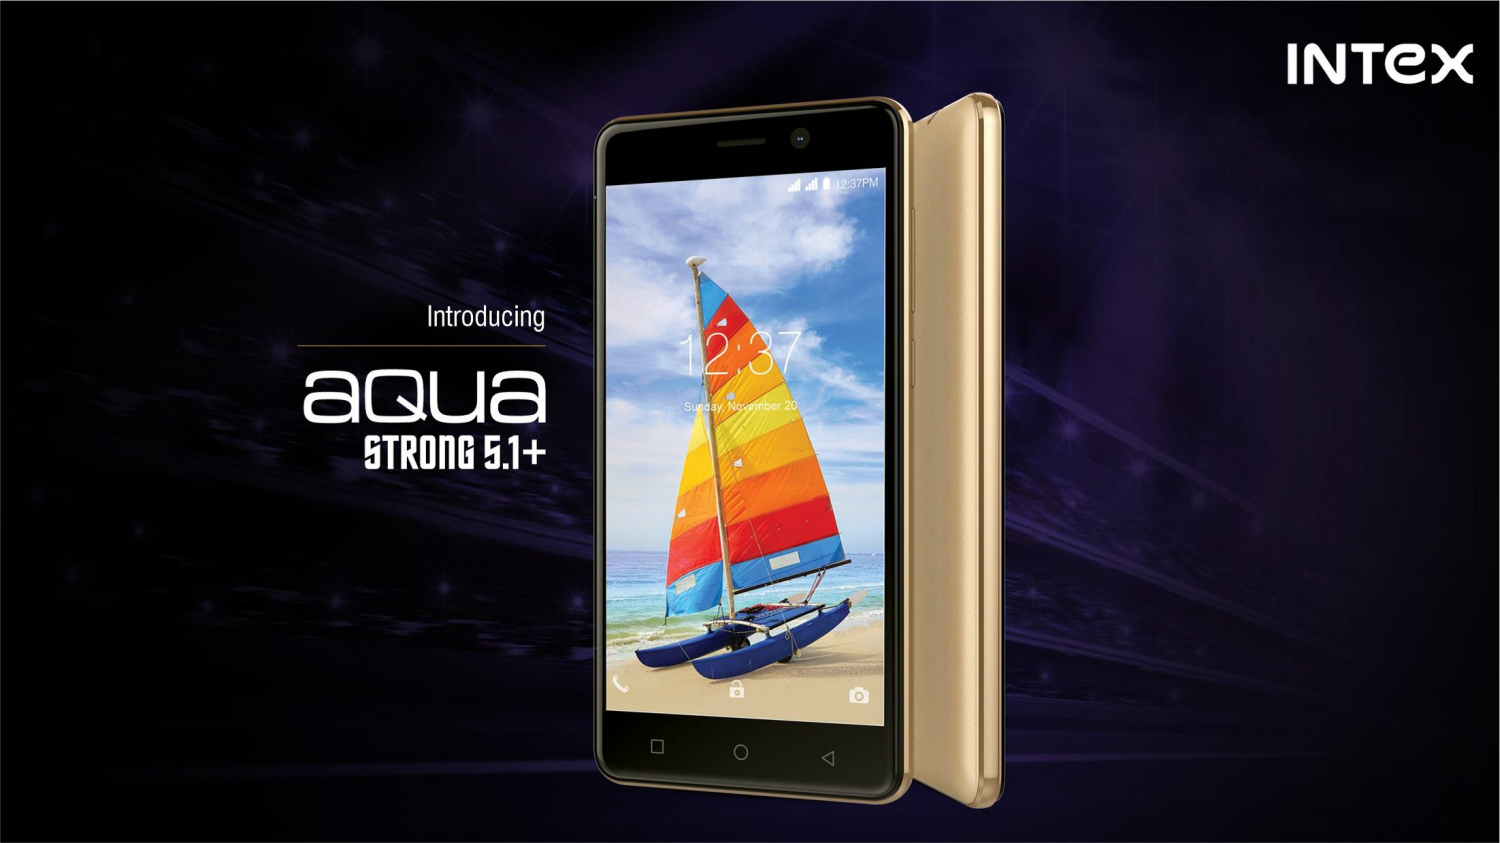 Intex Aqua Strong 5.1+ : Review, Specifications and Price in India